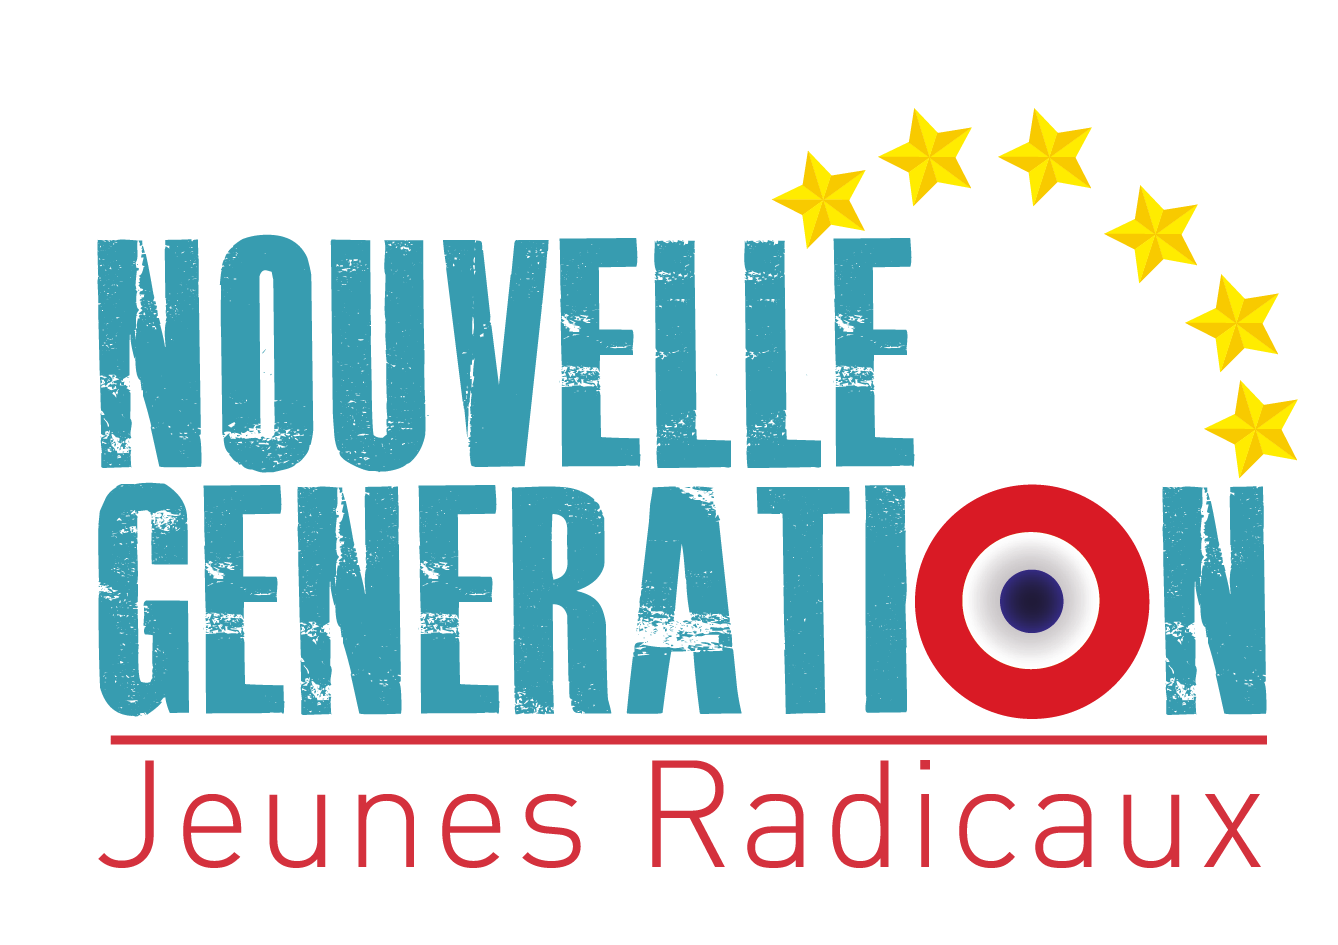 http://jbelaud.politicien.fr/files/2011/02/Logo-JR-2010.png